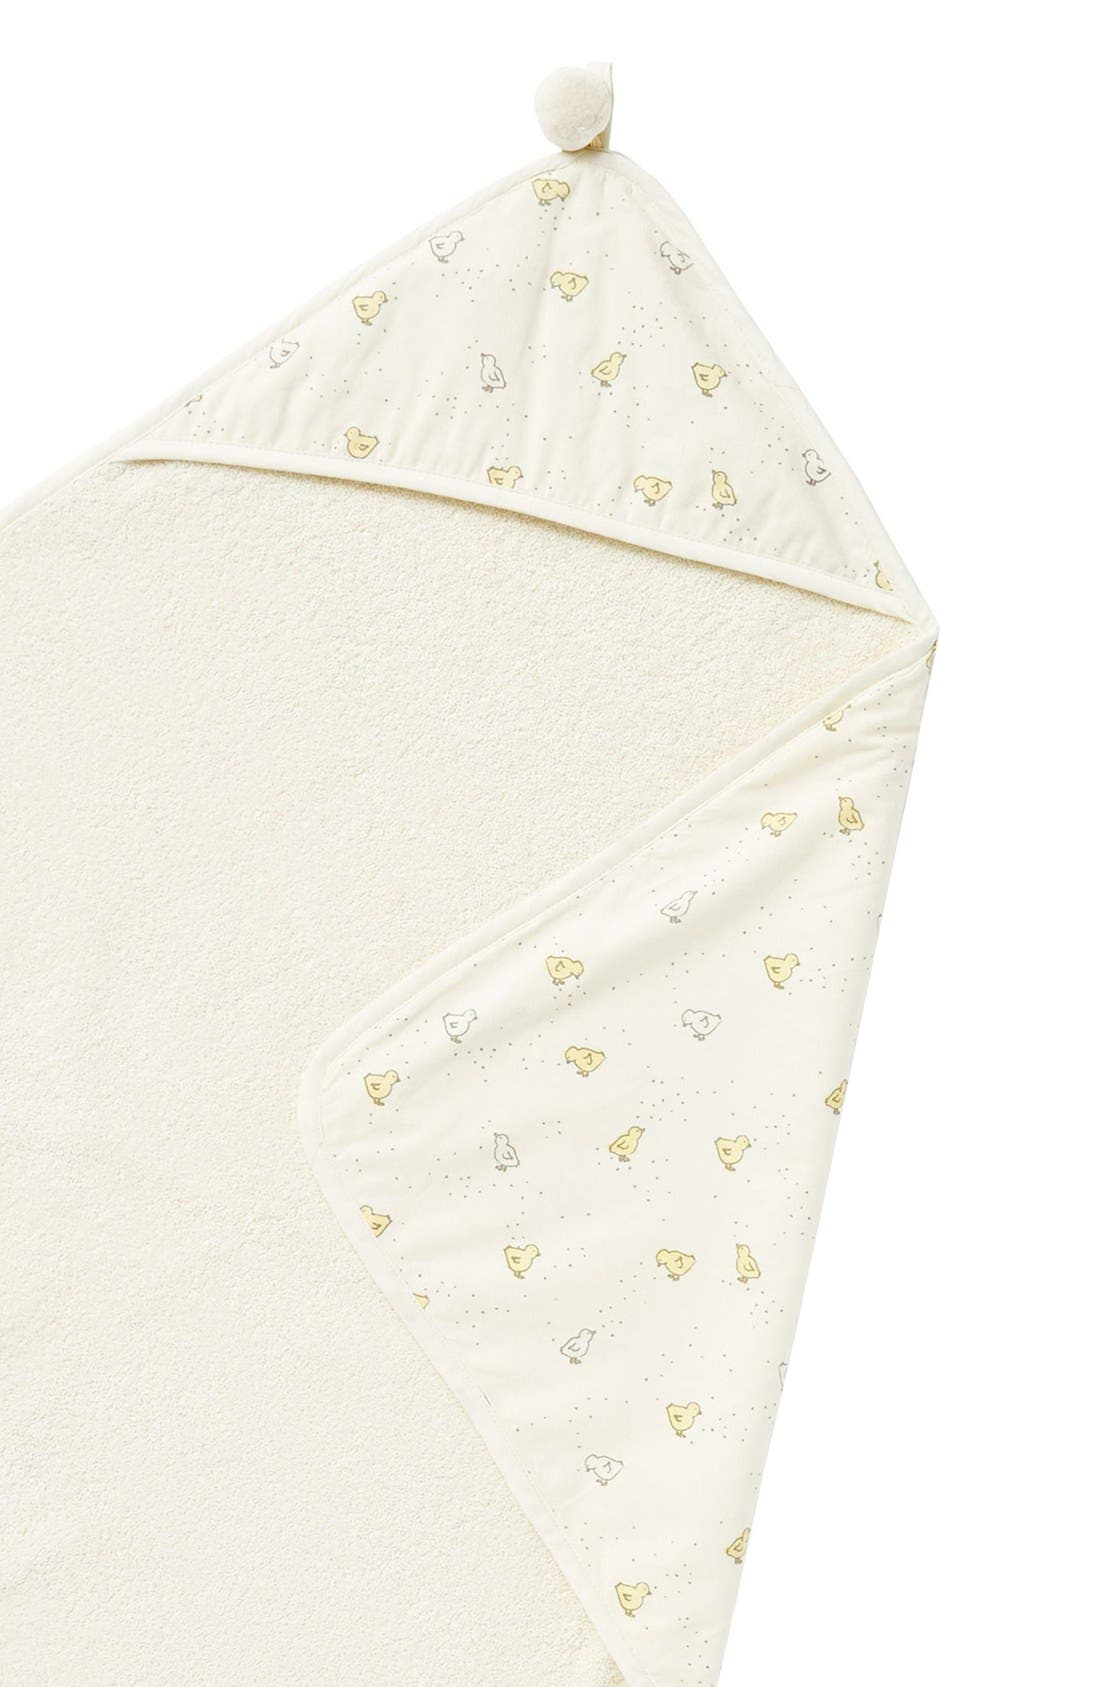 Baby Chick Print Hooded Towel,                             Alternate thumbnail 3, color,